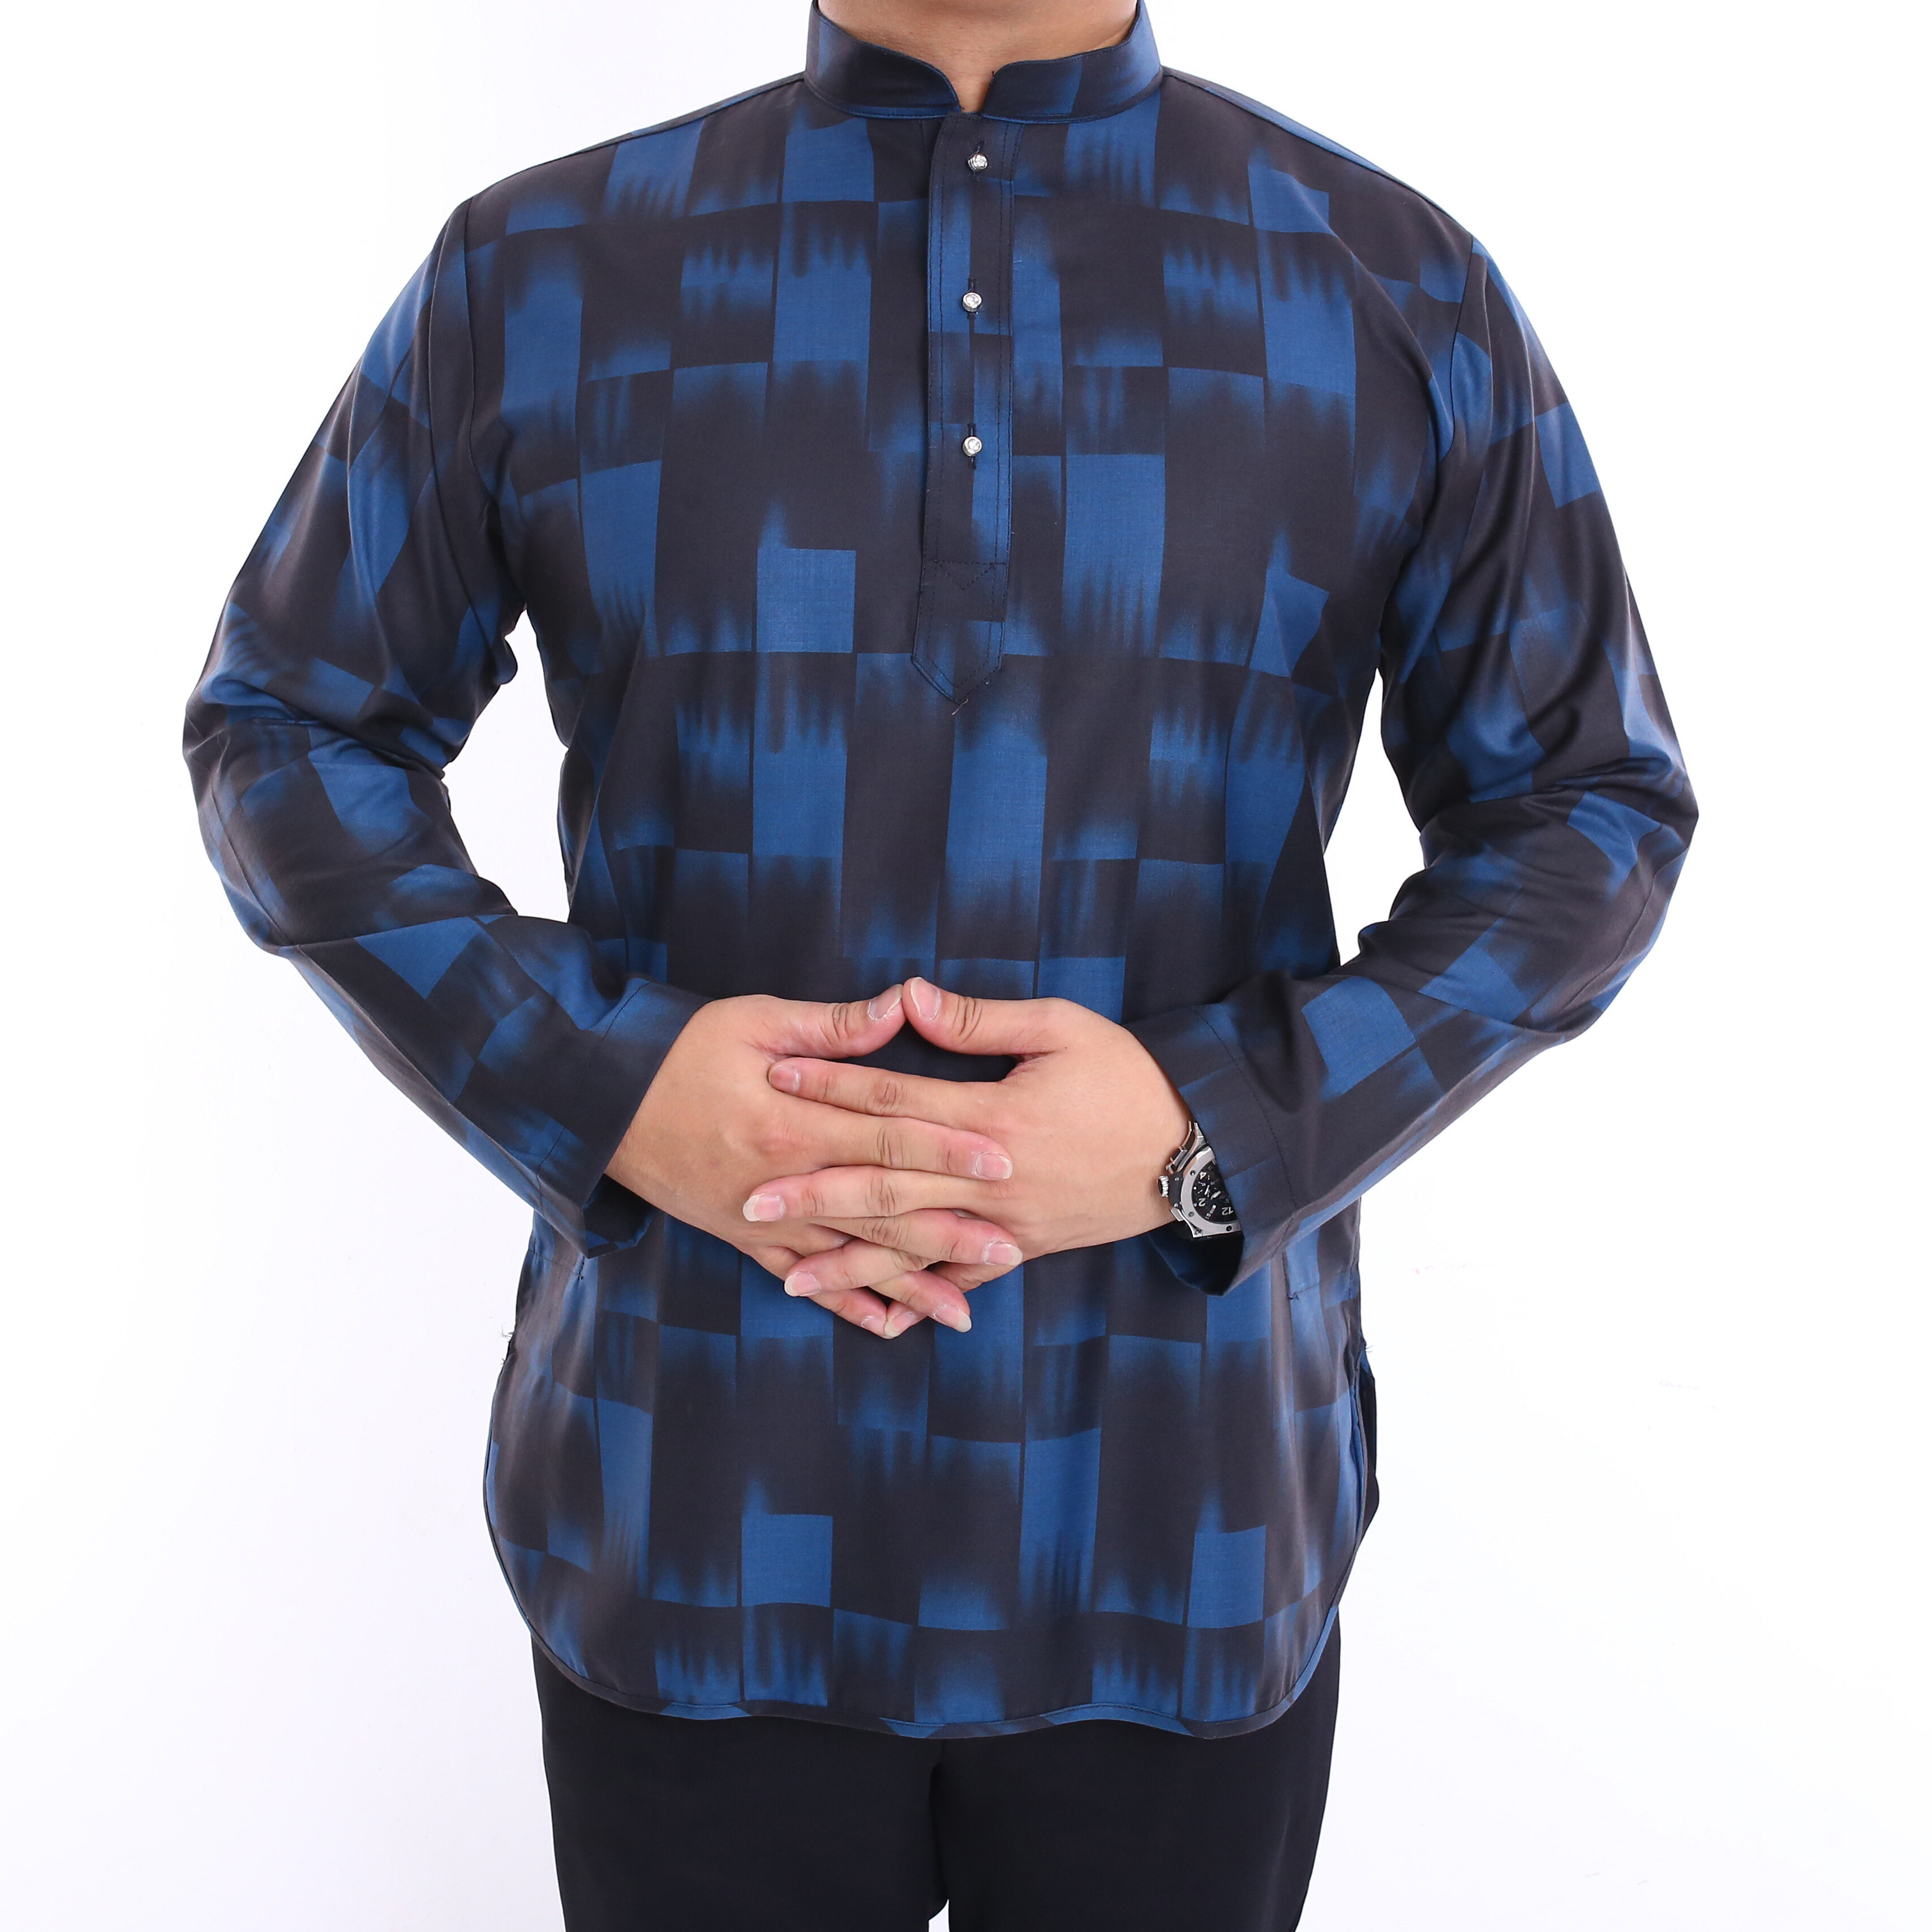 BAJU KURTA SHIRT LONG SLEEVE - SLIM FIT 2020 HOT SELLING { LIMITED EDITION }by Brand A MANK